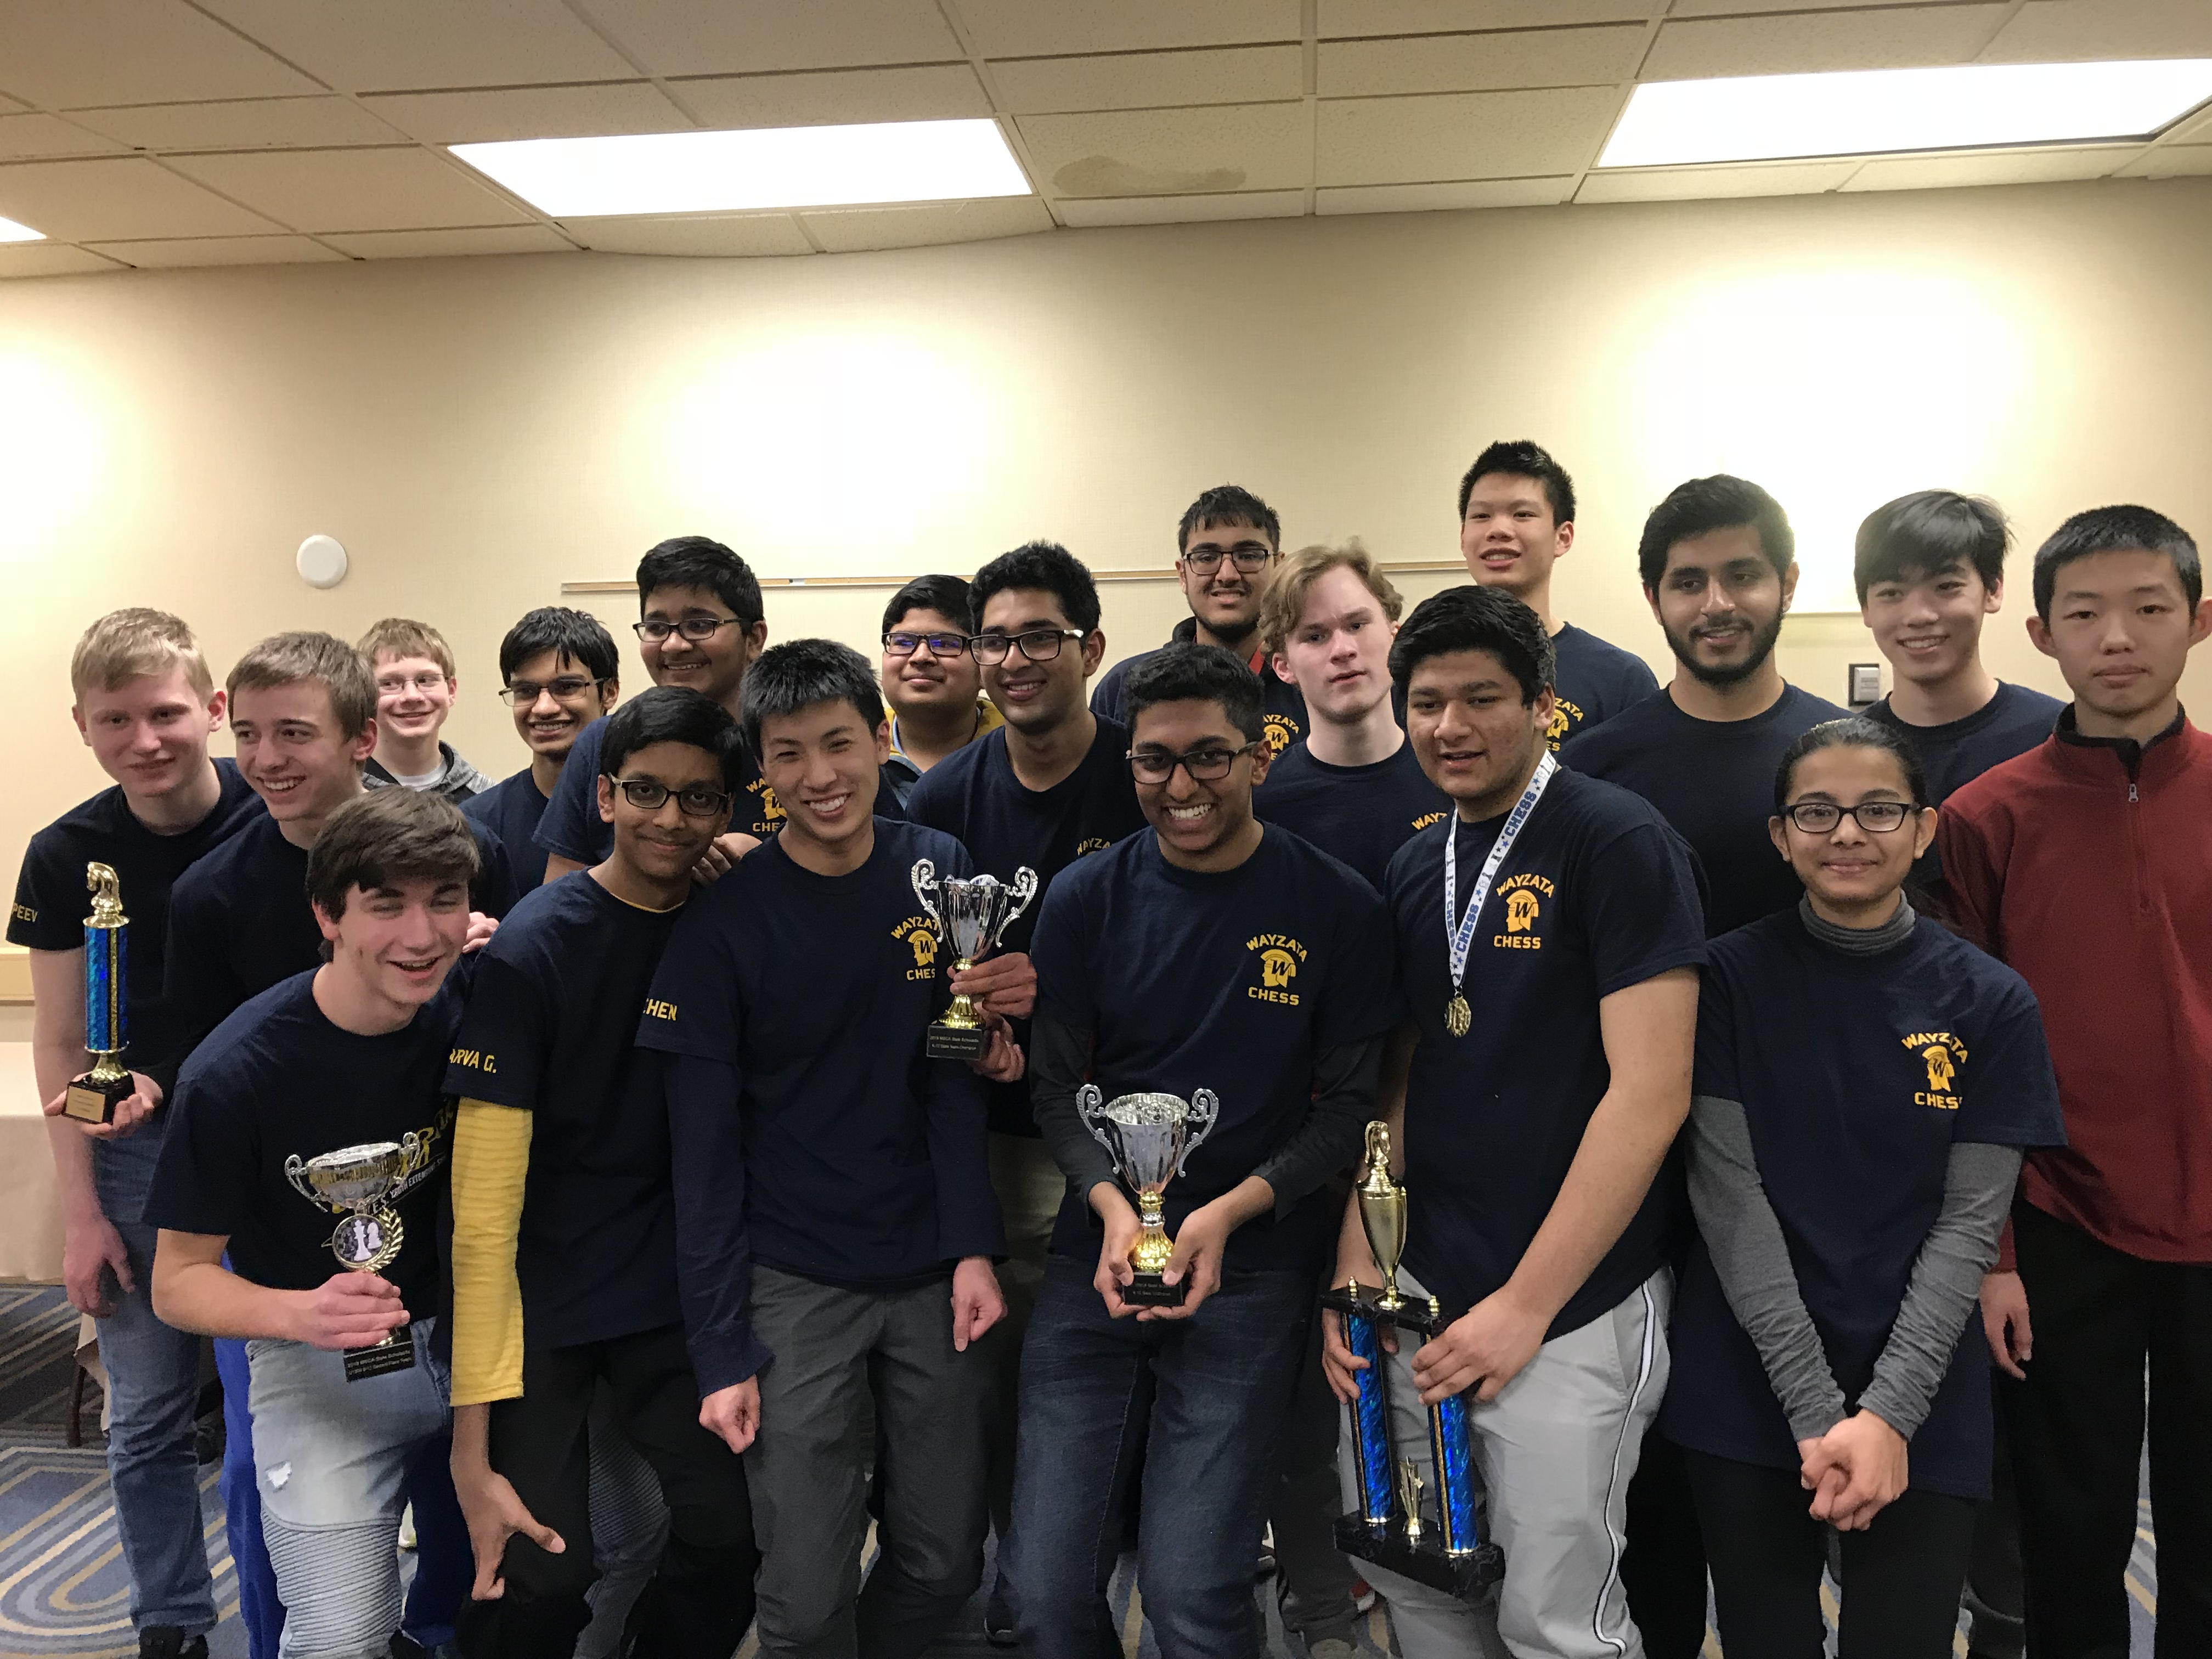 Chess Team Wins State Championship